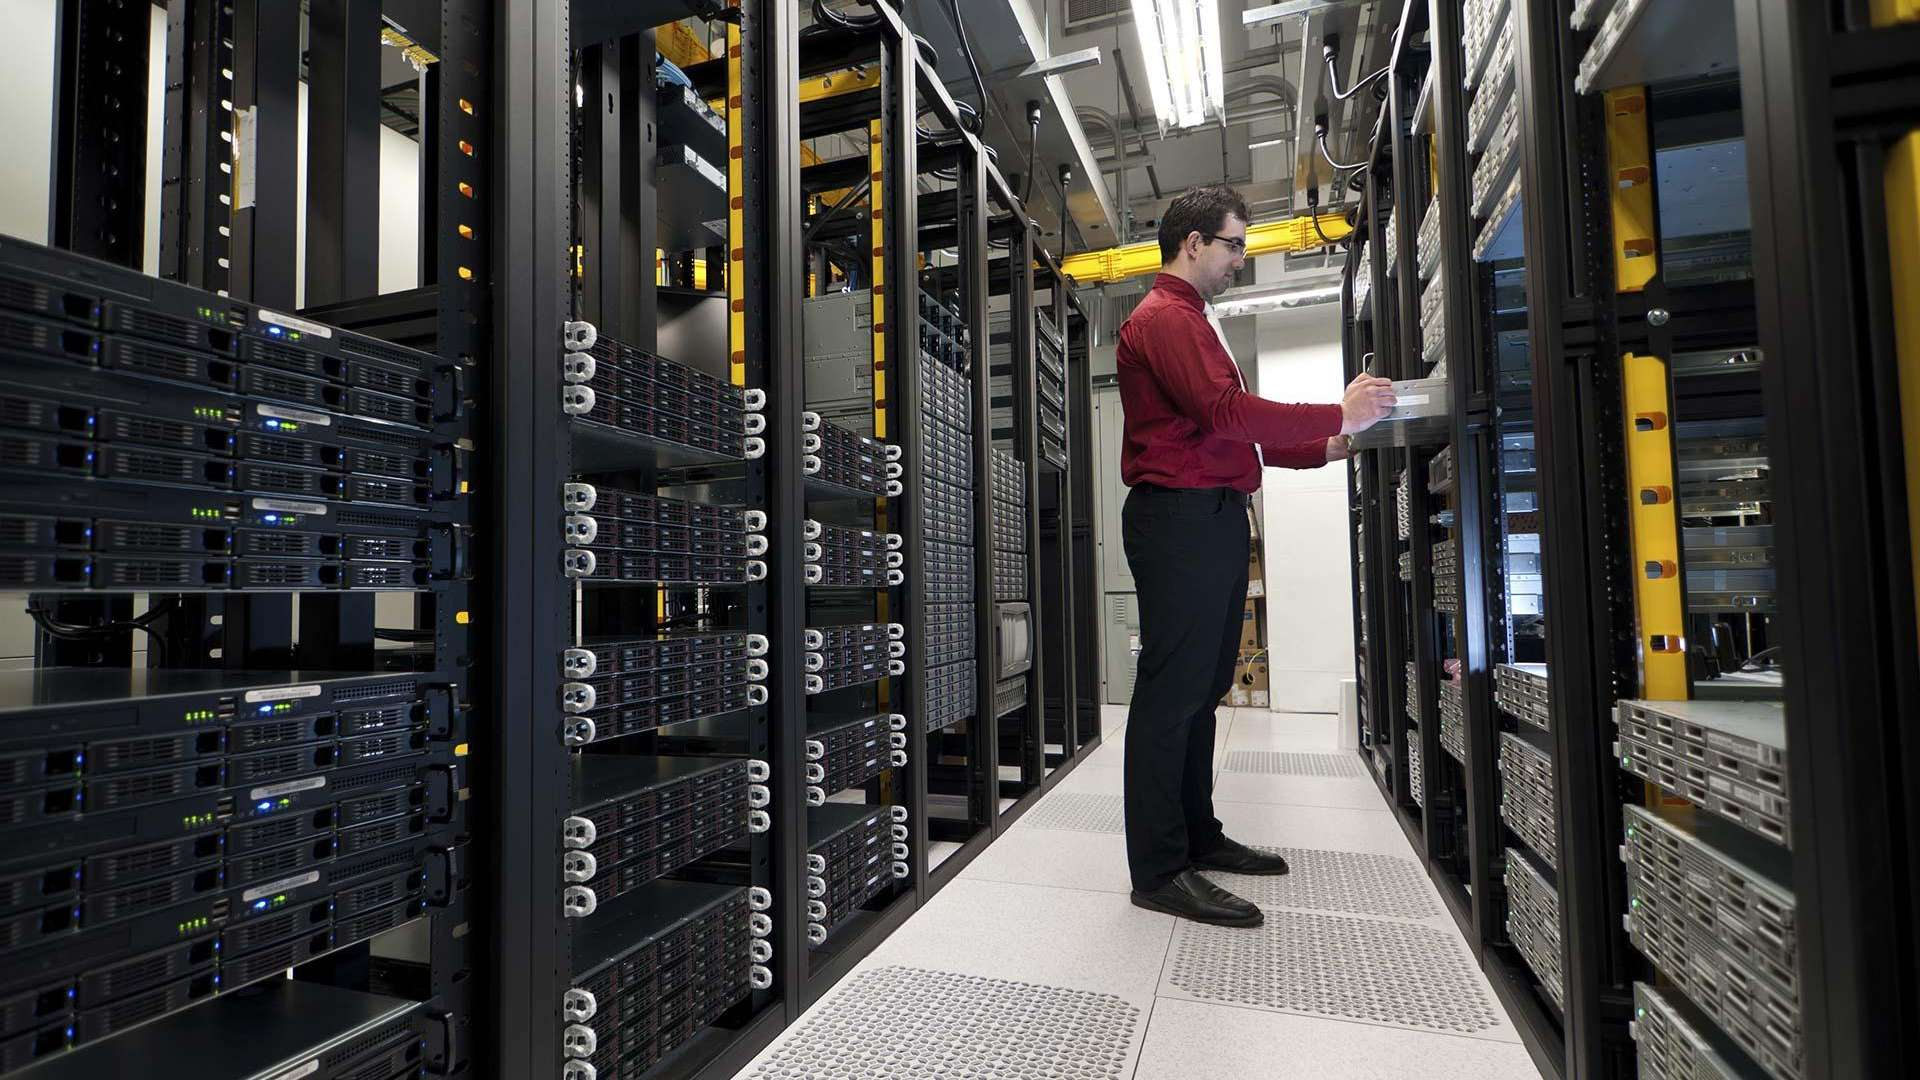 You most likely already use cloud computing without even realising it